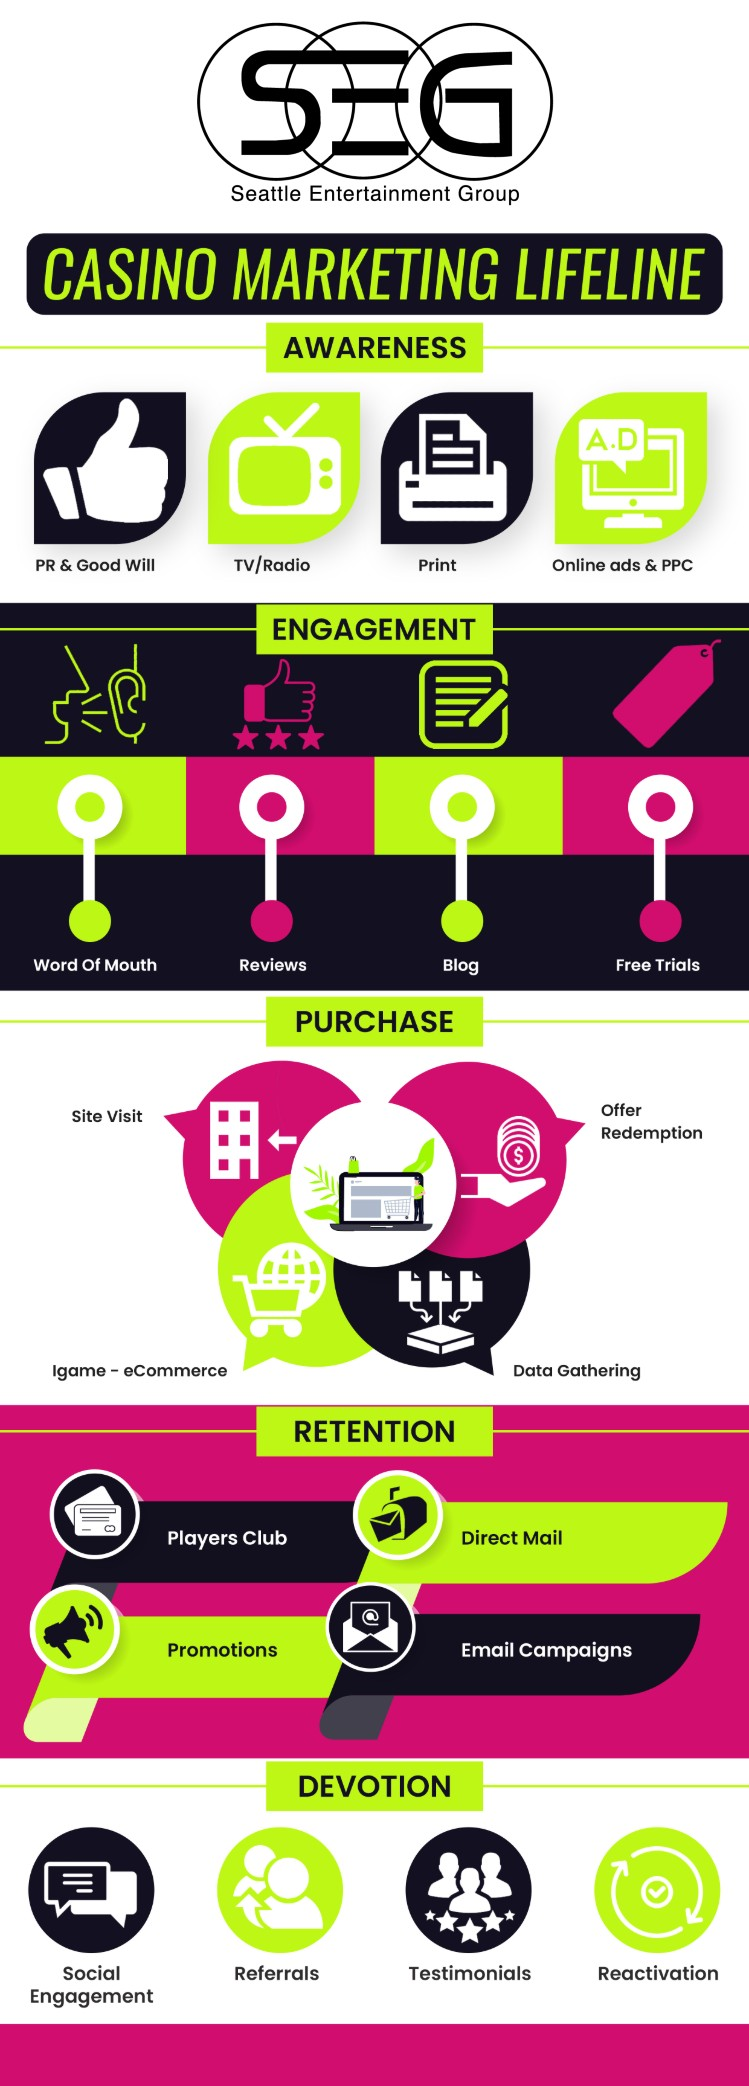 Casino_Marketing_Lifeline